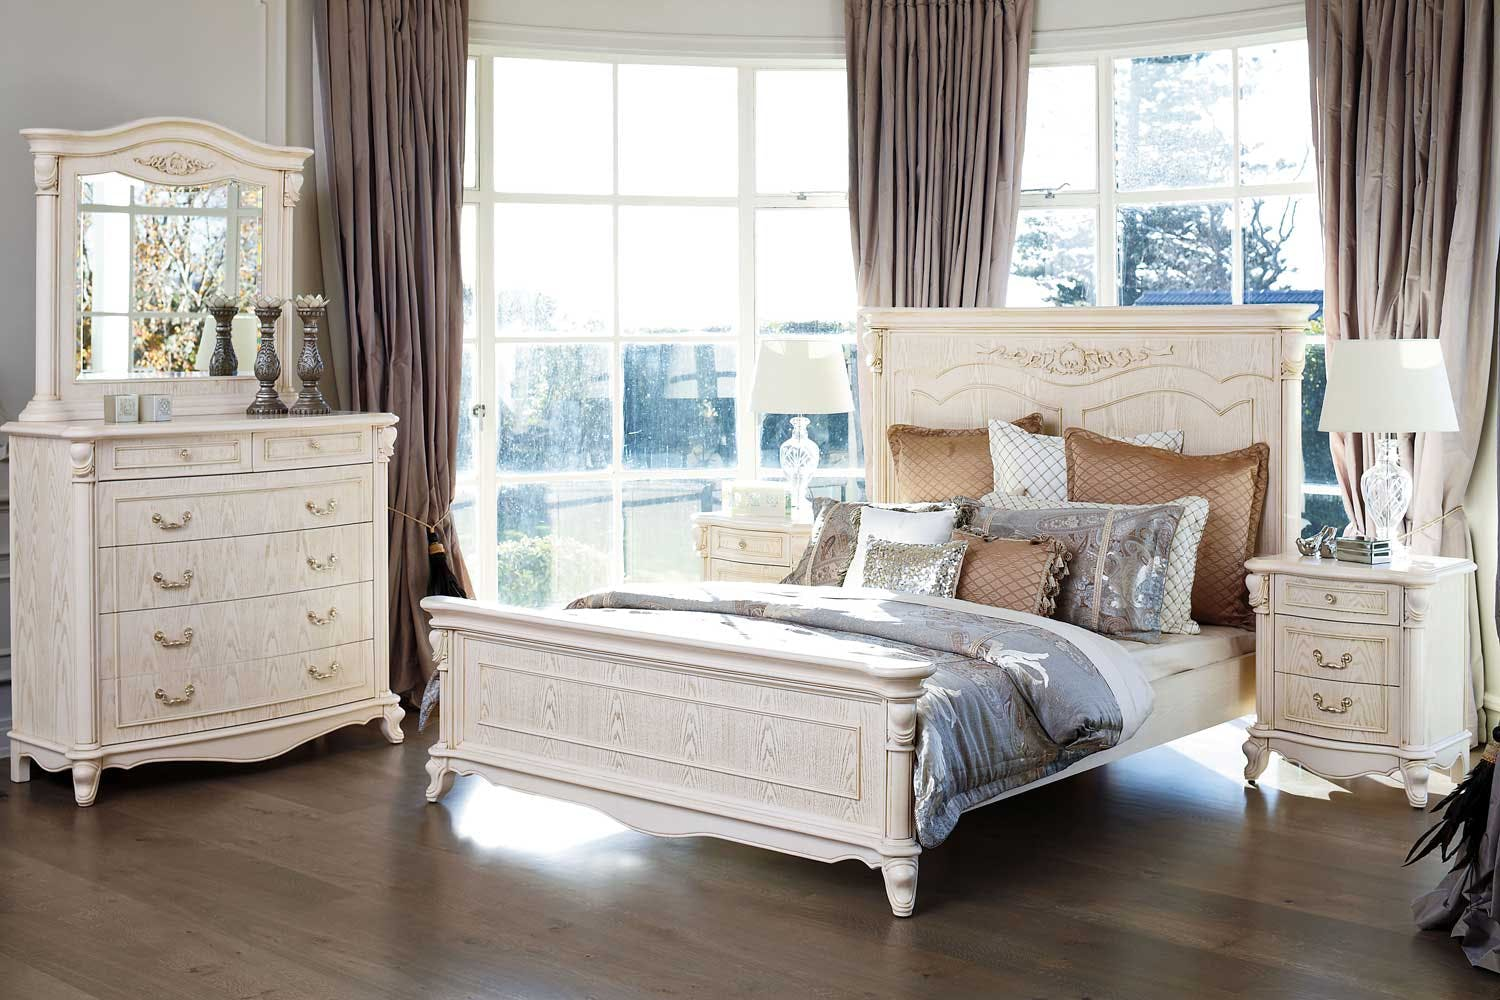 Chateau bedroom suite by sorensen furniture harvey - How to furnish a small bedroom ...